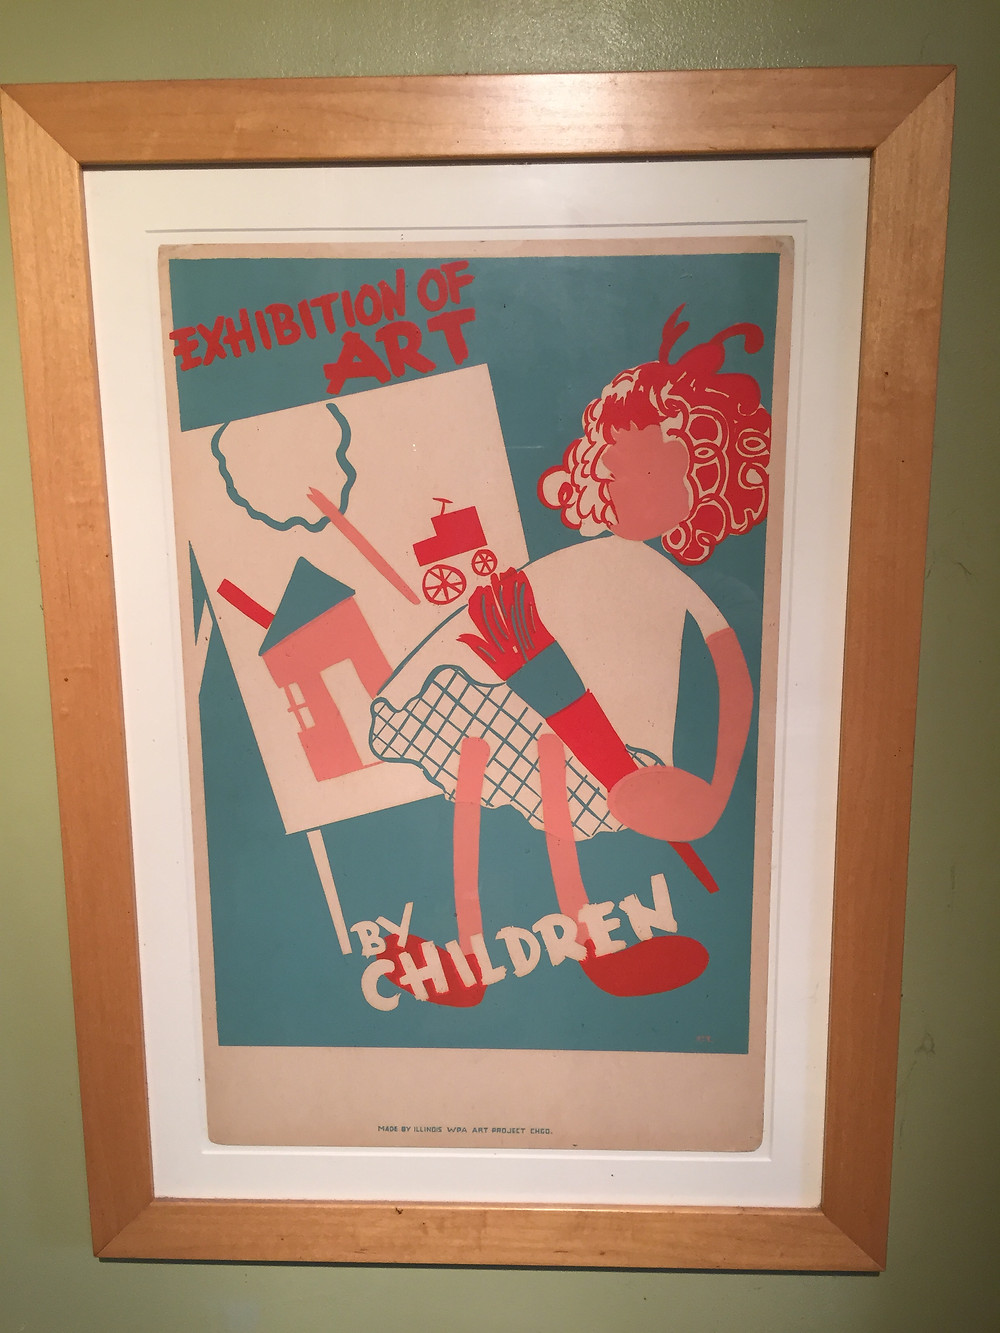 Children in the Great Depression were given art classes that employed artists as teachers and as poster designers